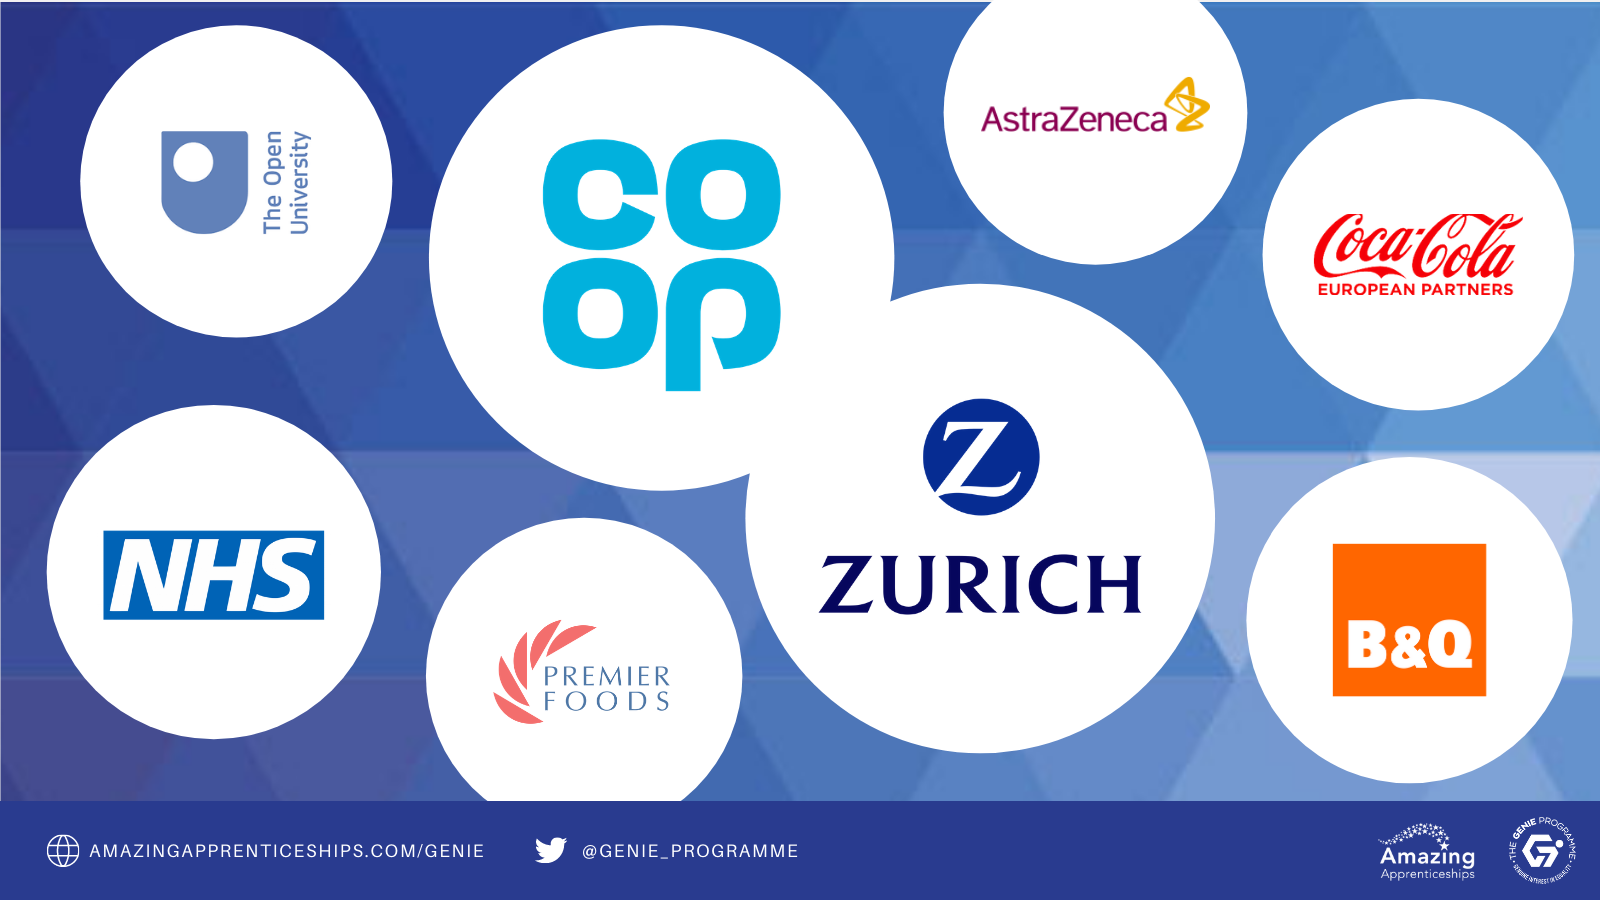 Zurich and Southern Co-op lead the way in understanding and addressing the challenges faced by disadvantaged and diverse apprentices